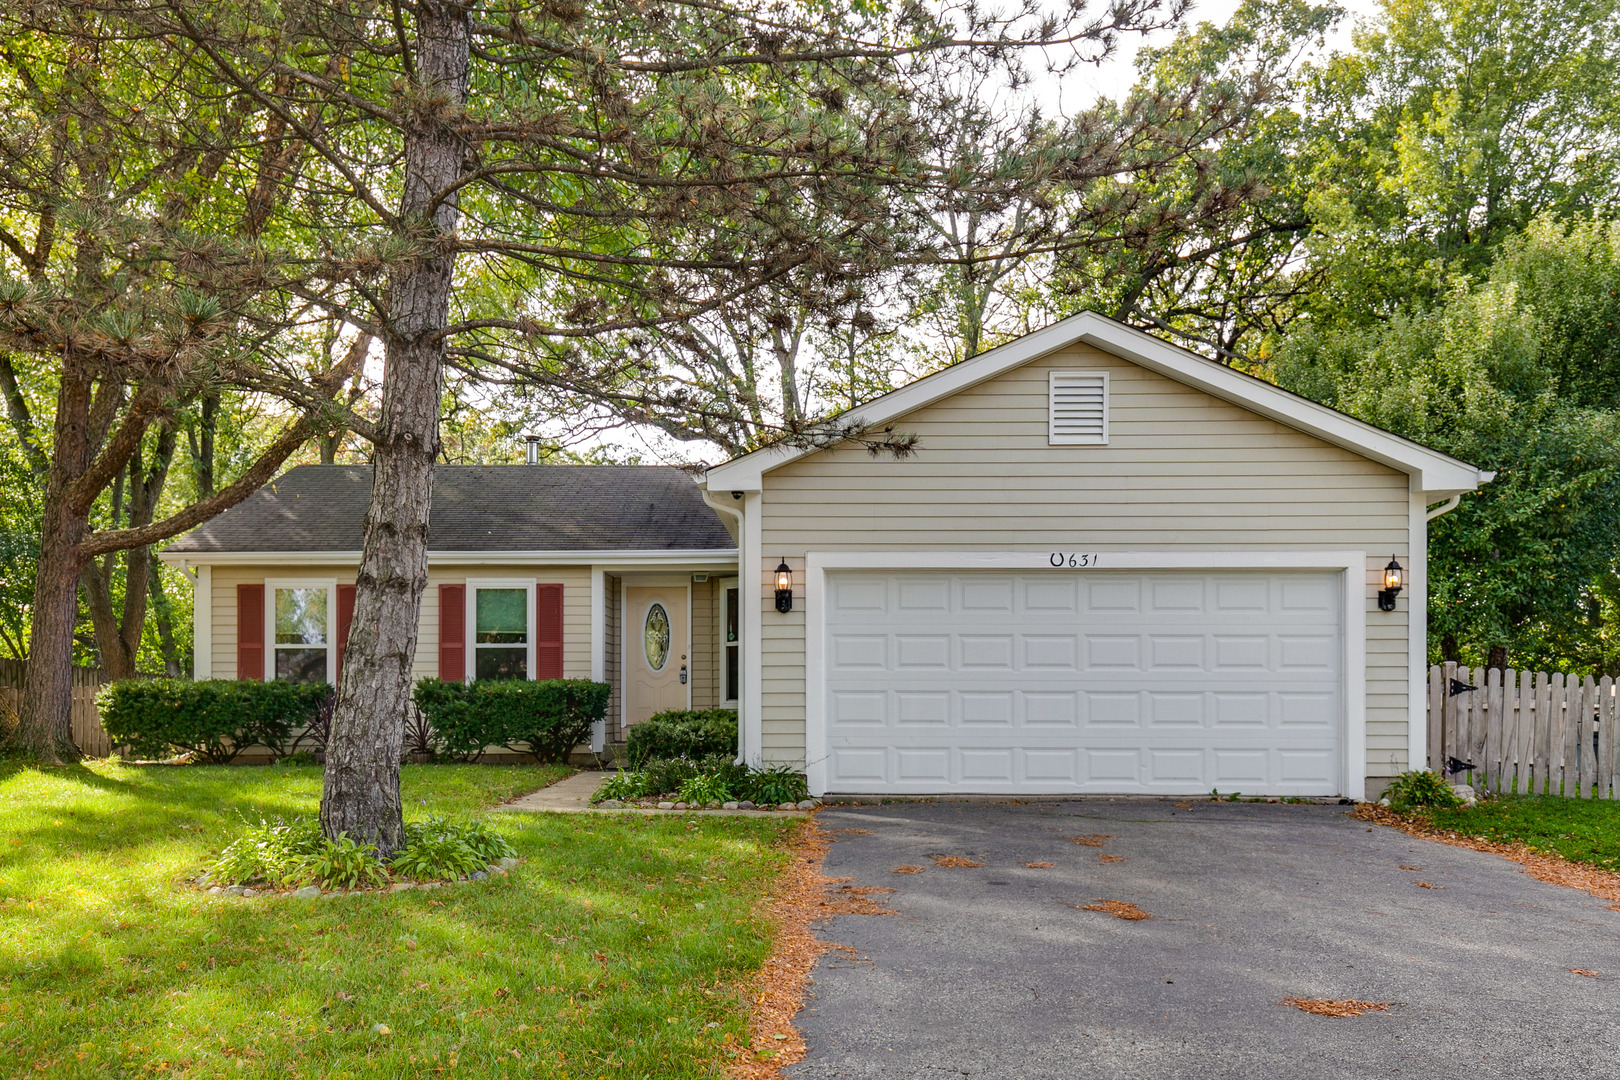 Photo for 631 Timberwood Lane, Algonquin, IL 60102 (MLS # 10903180)